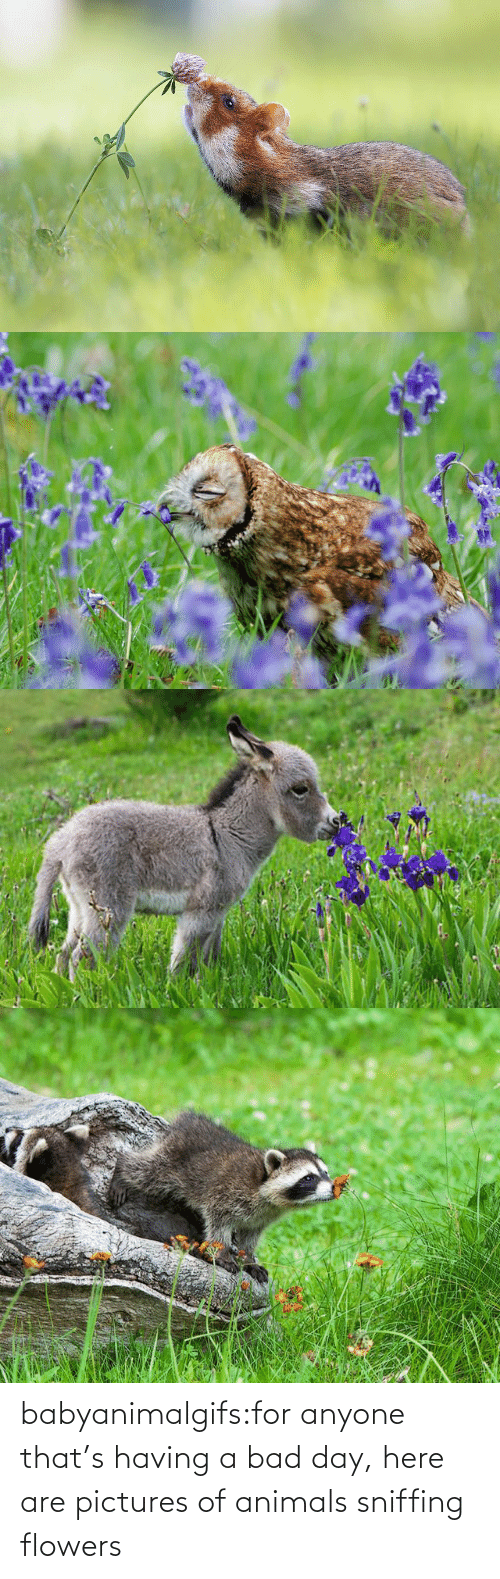 Bad day: babyanimalgifs:for anyone that's having a bad day, here are pictures of animals sniffing flowers